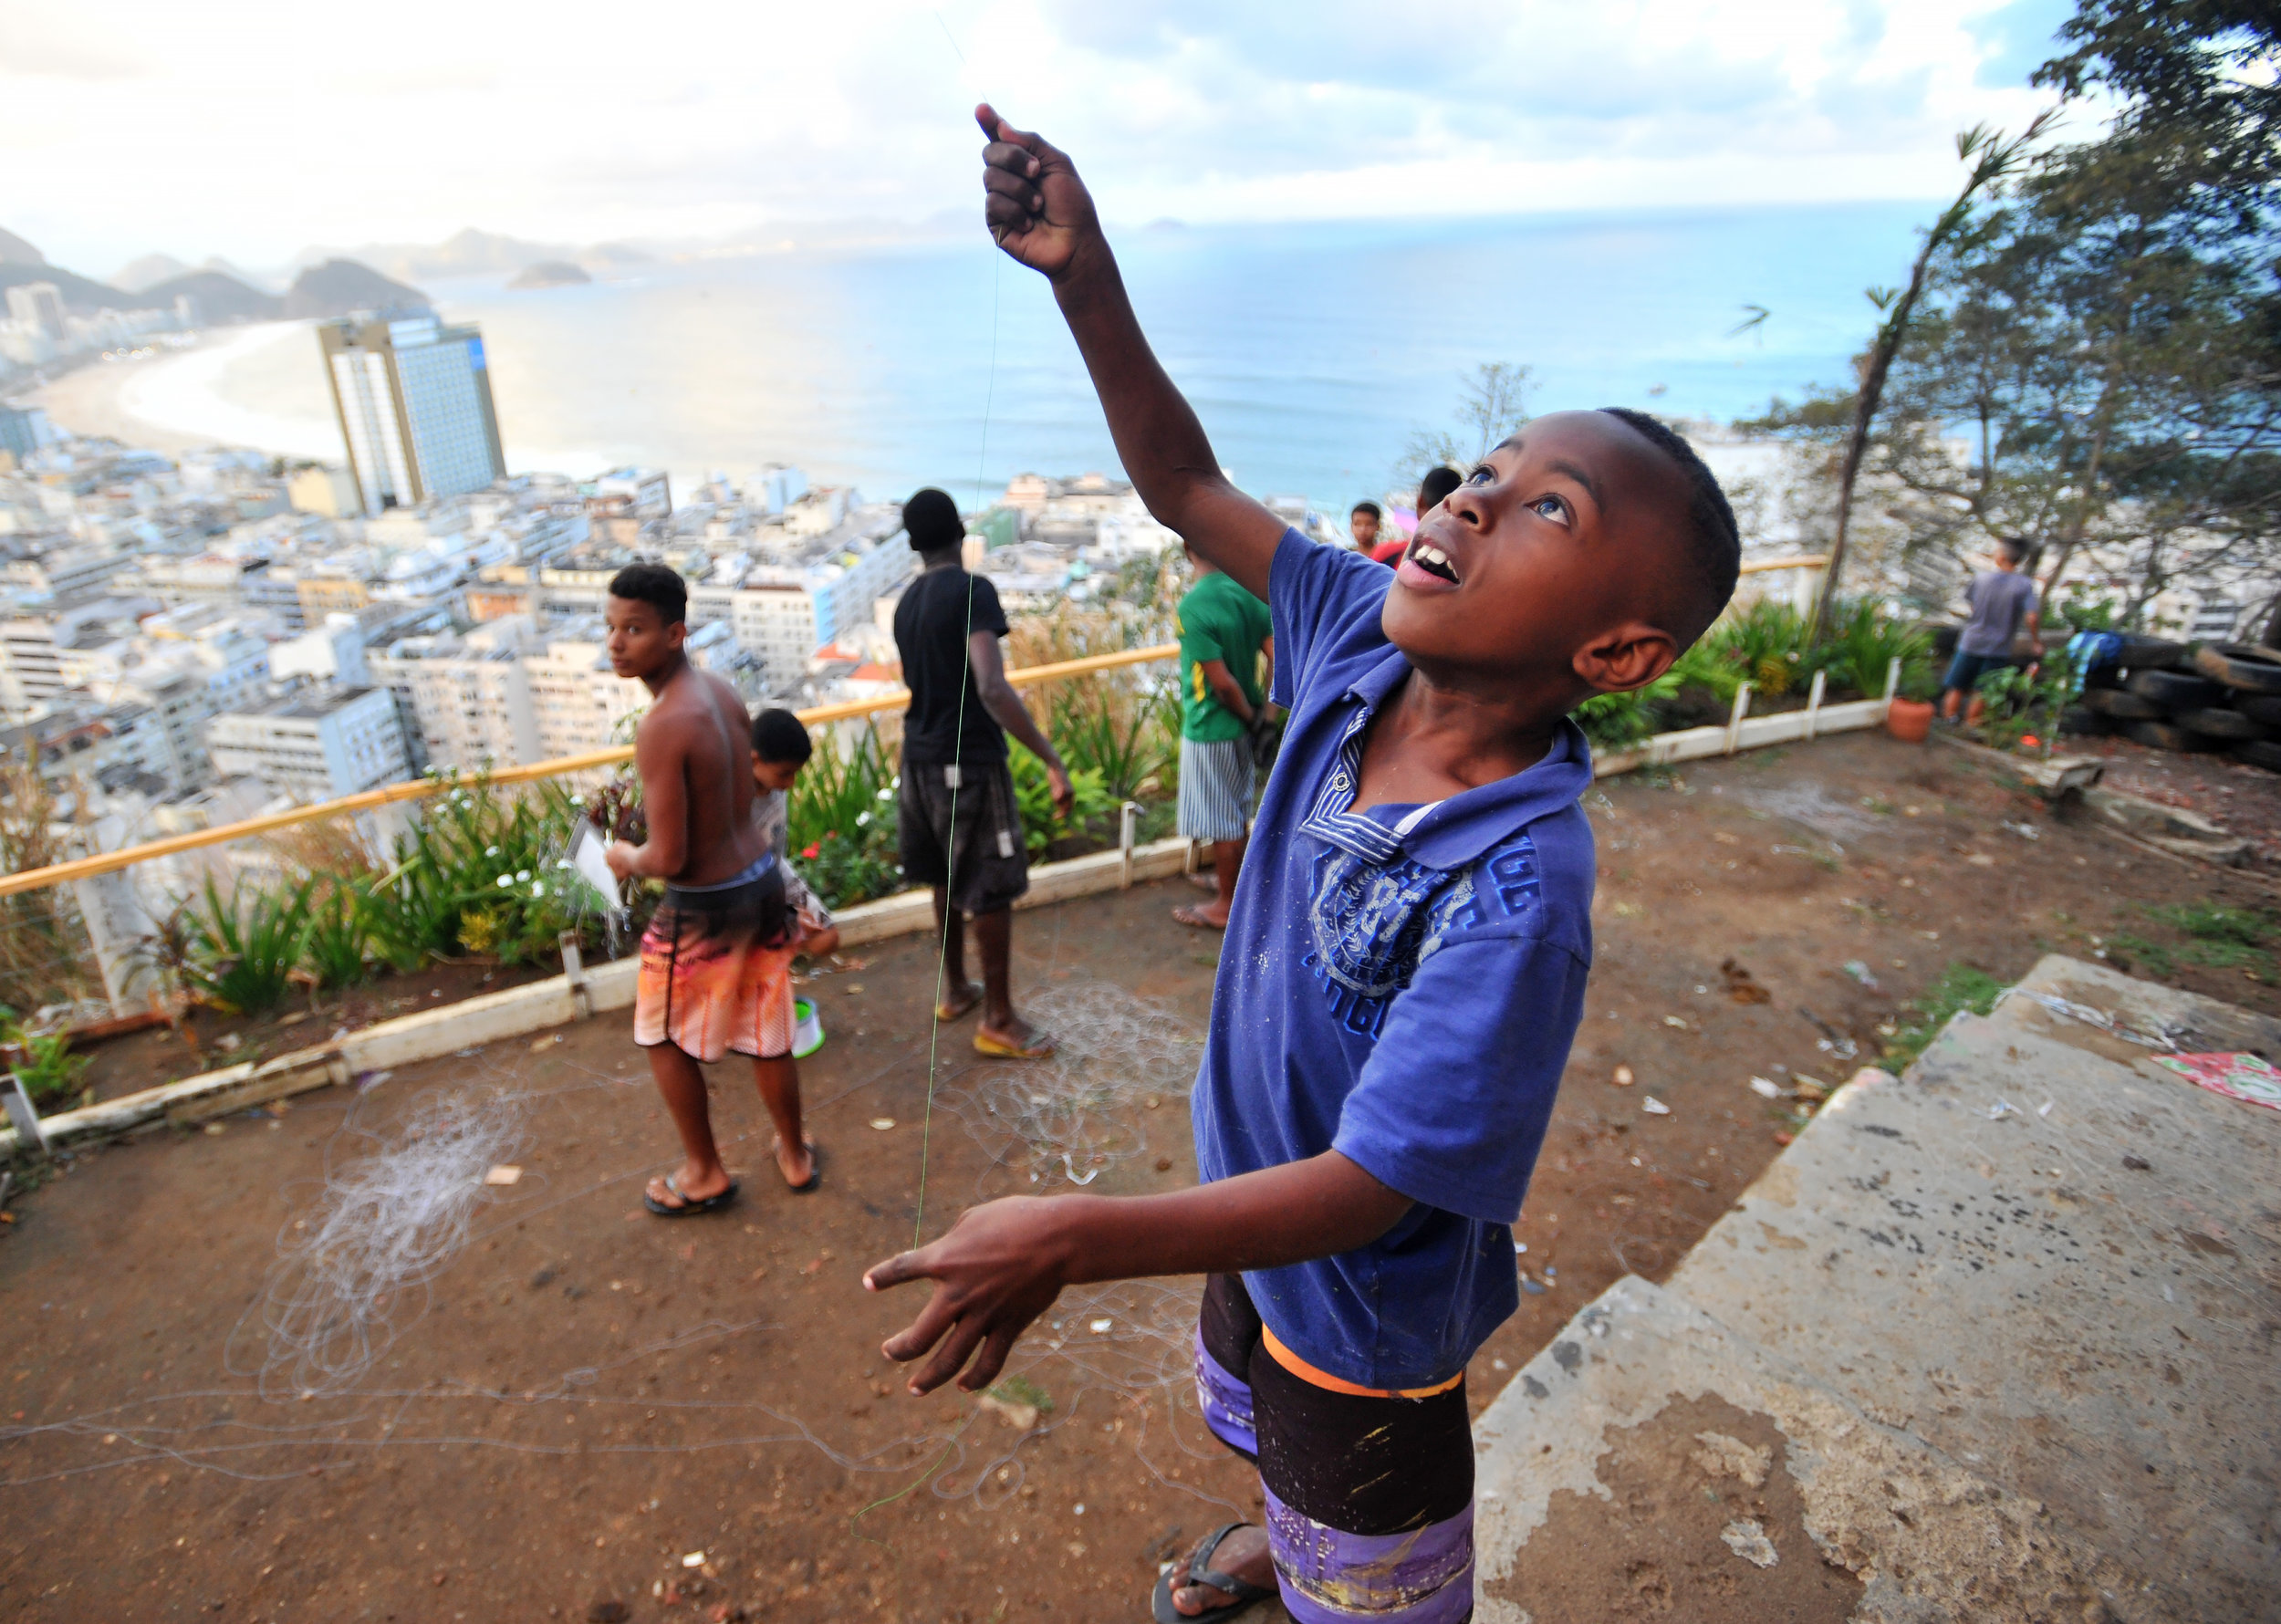 Gabriel Ignacio, 6, flies a kite in the favela that he lives in in Rio de Janeiro, Brazil, on August 12, 2016. The children build their own kites and attempt to catch their friends' kites in order to win the game. (Sarah Stier | Ball State at the Games)